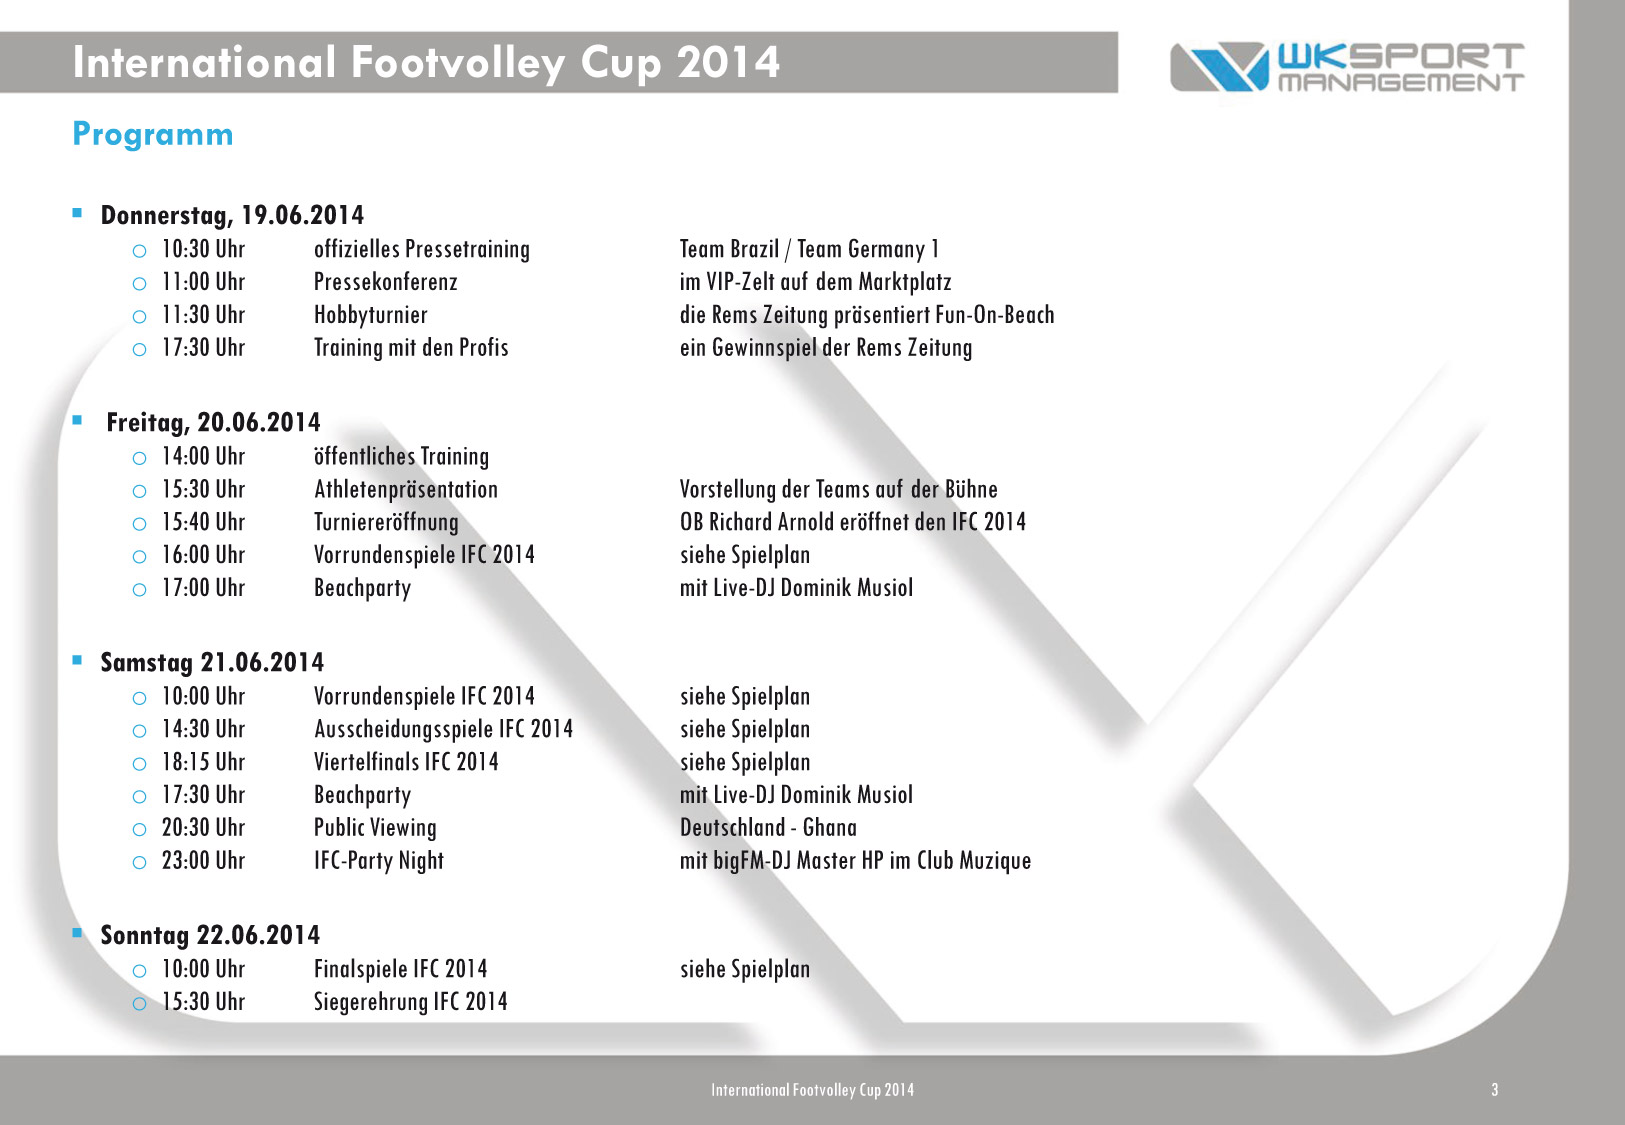 International Footvolley Cup 2014 – IFC – Schwäbisch Gmünd